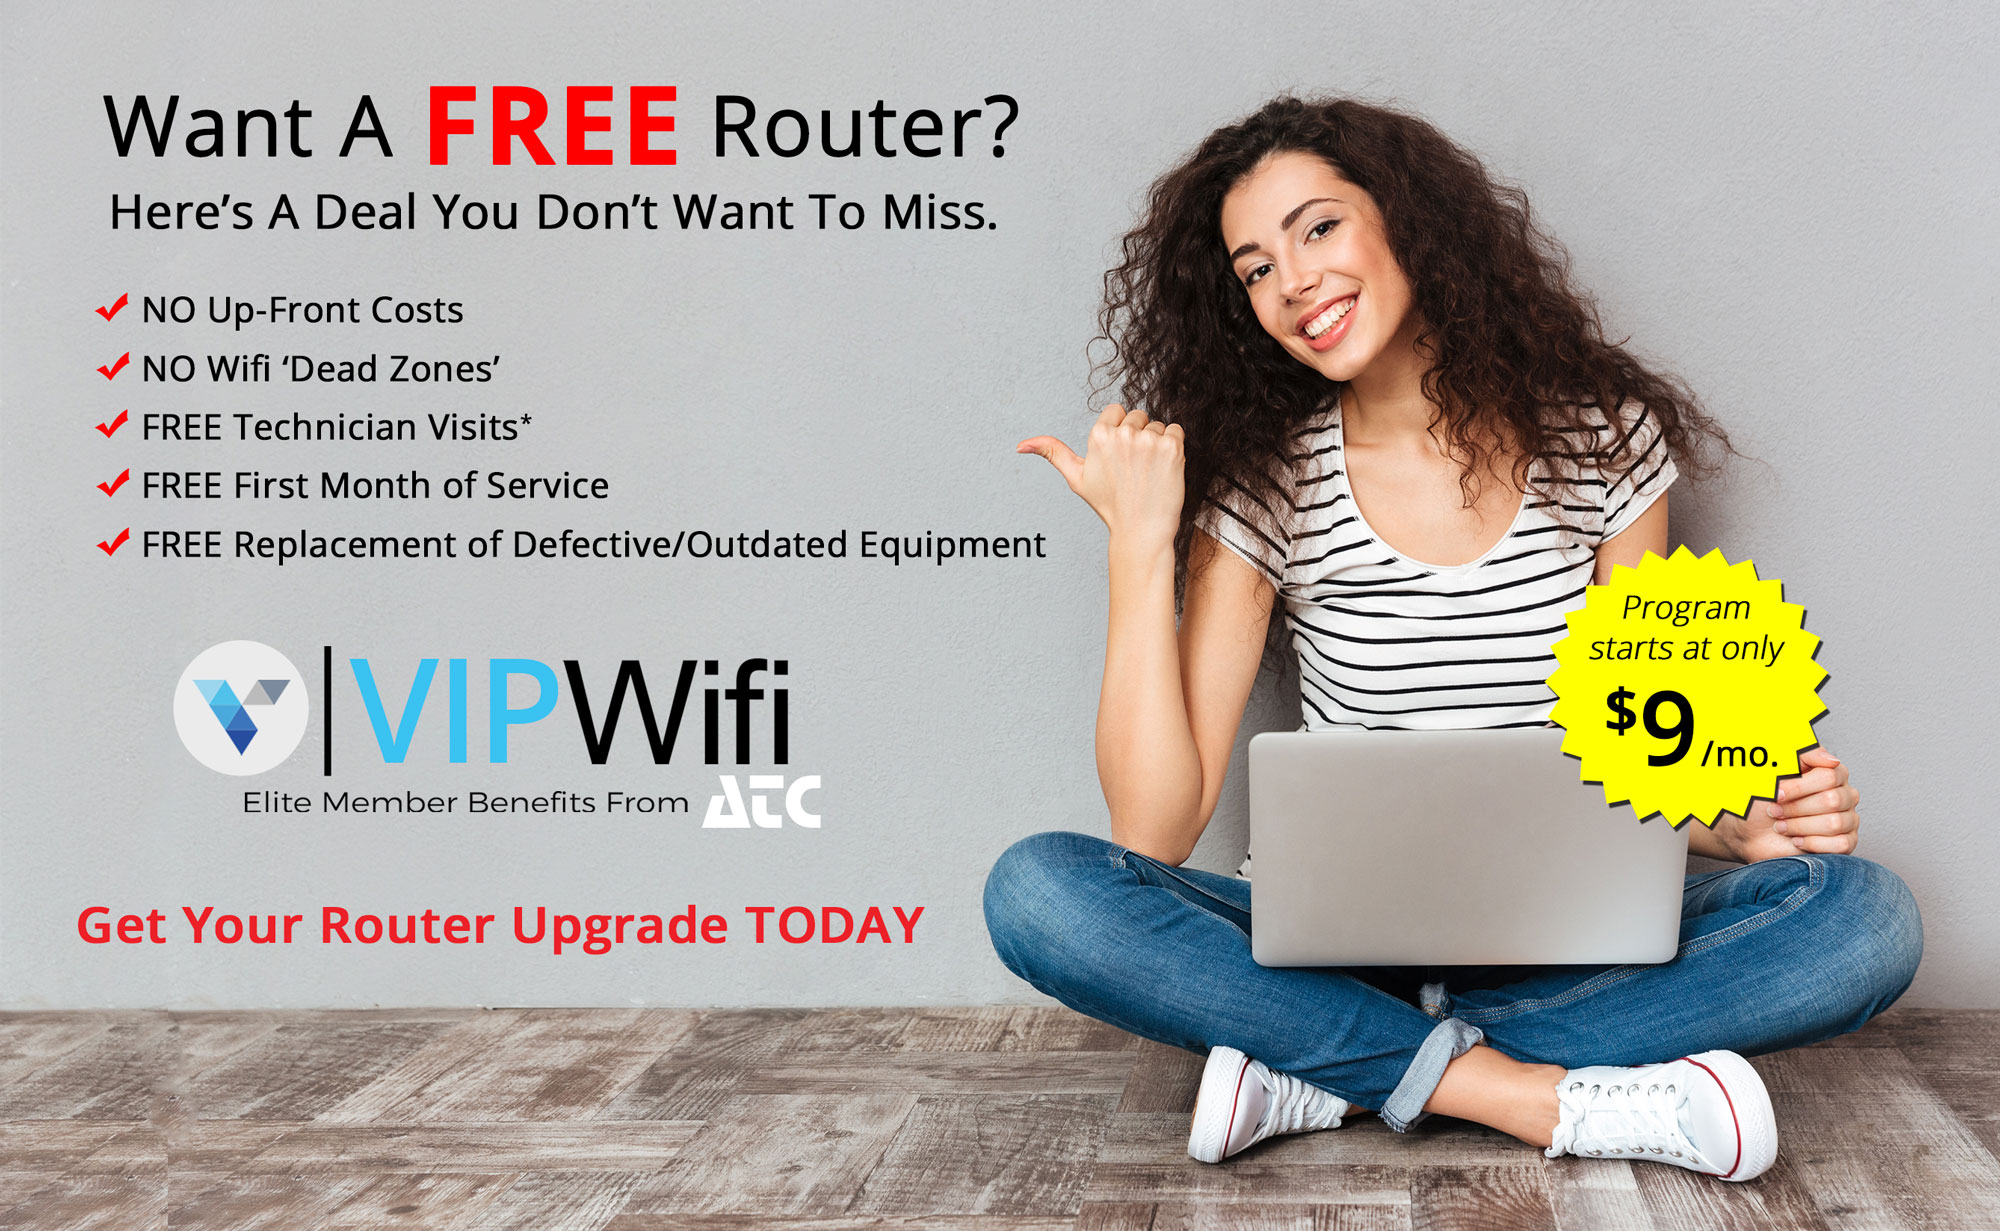 Want-A-Free-Router-2